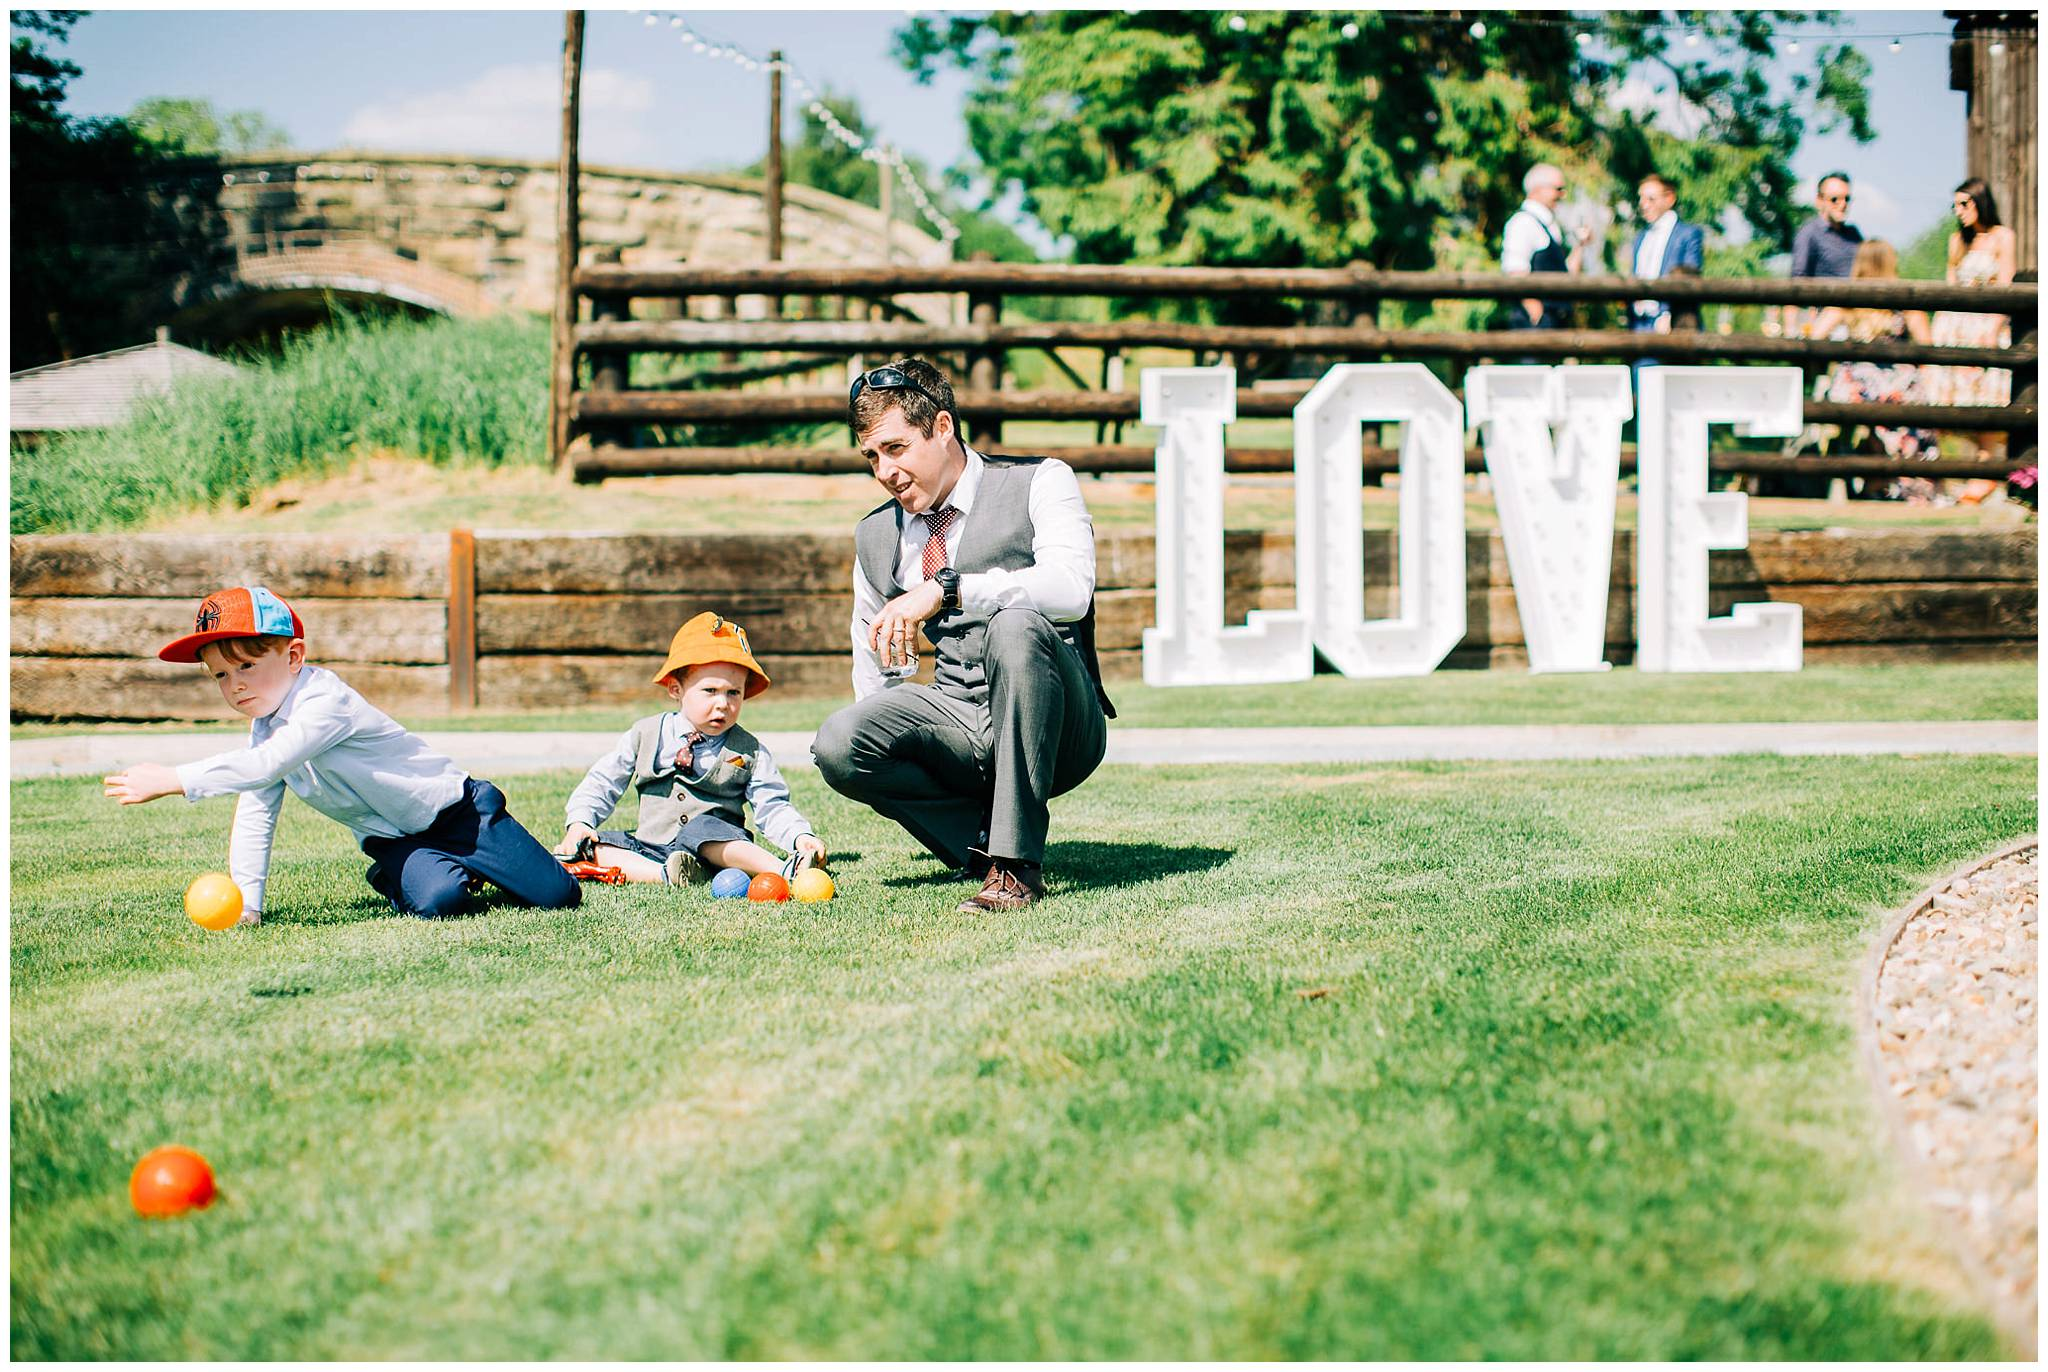 two young children with colourful sun hats are sat on the grass playing with their father